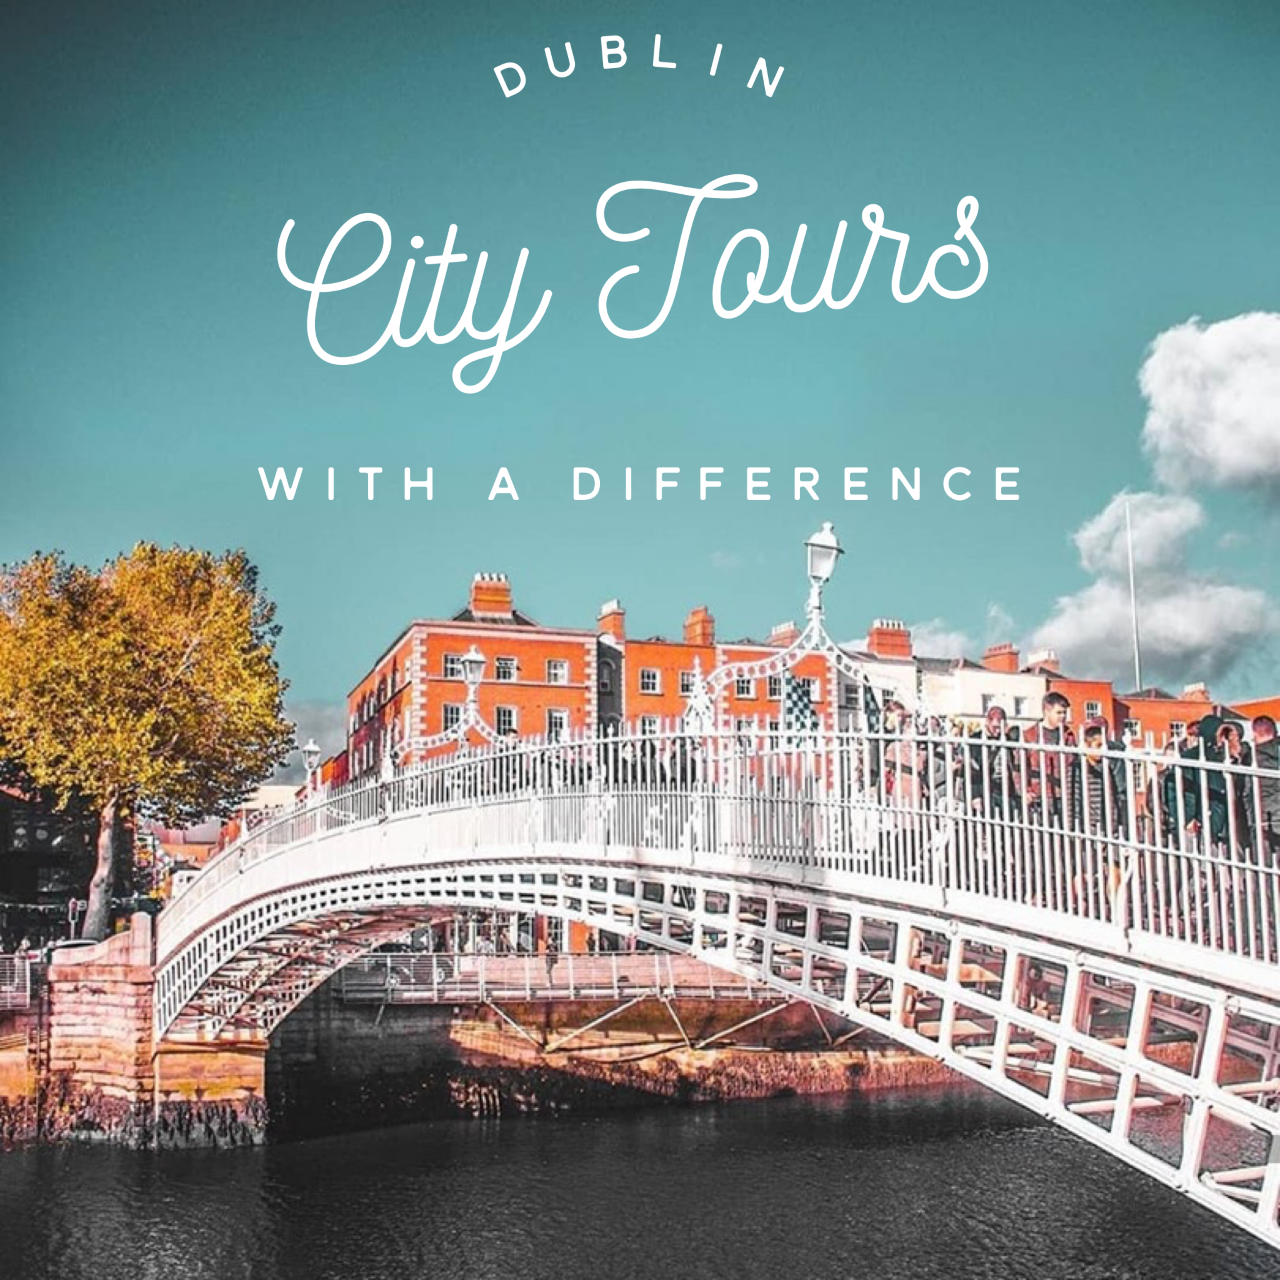 Dublin city tours with a difference